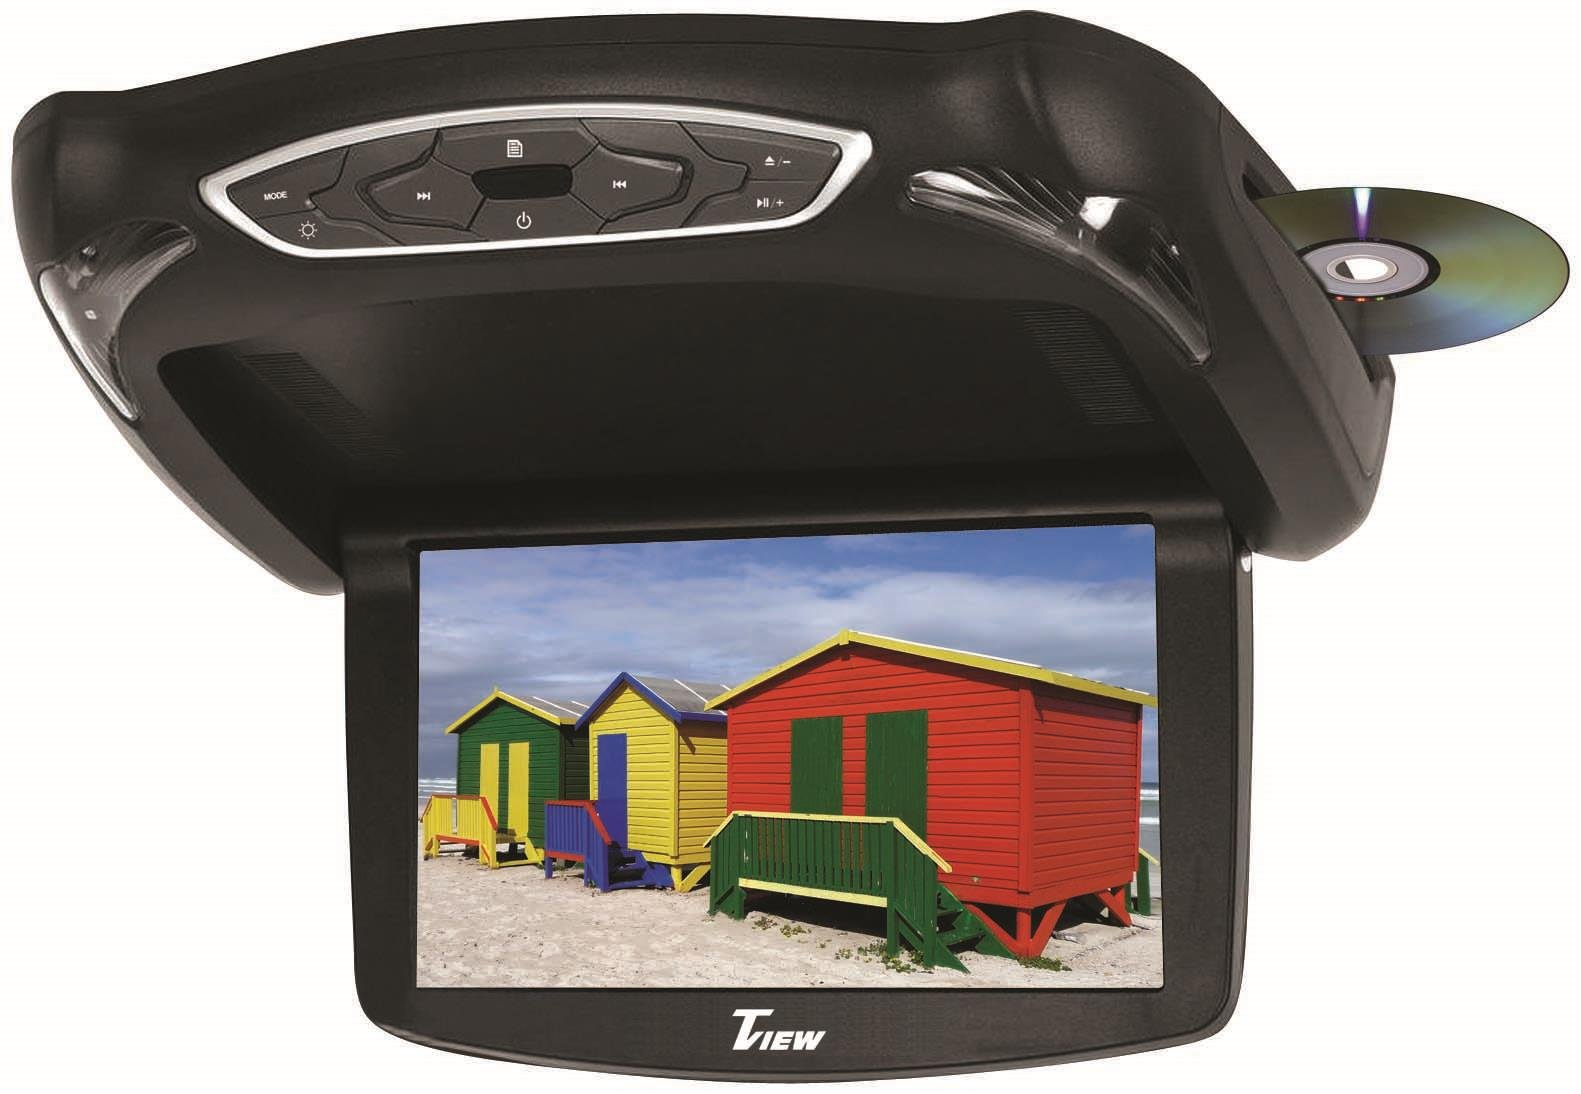 T-View 12Volt Mobile Video - Model#: T133DVFD